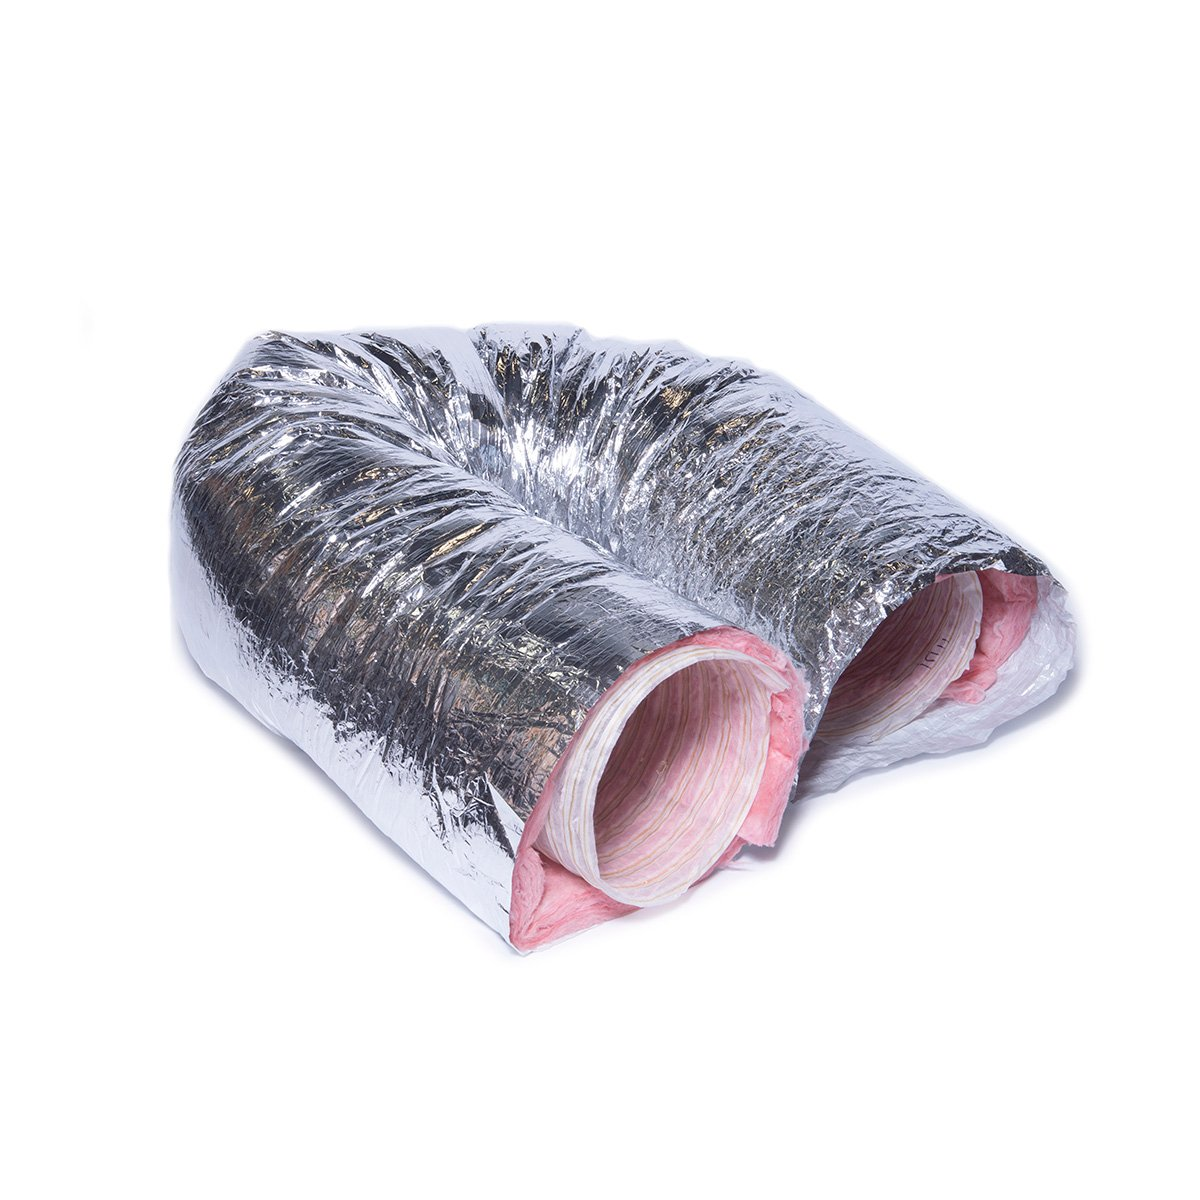 "Return Air Duct, 3036, 16"" x 10', R8"